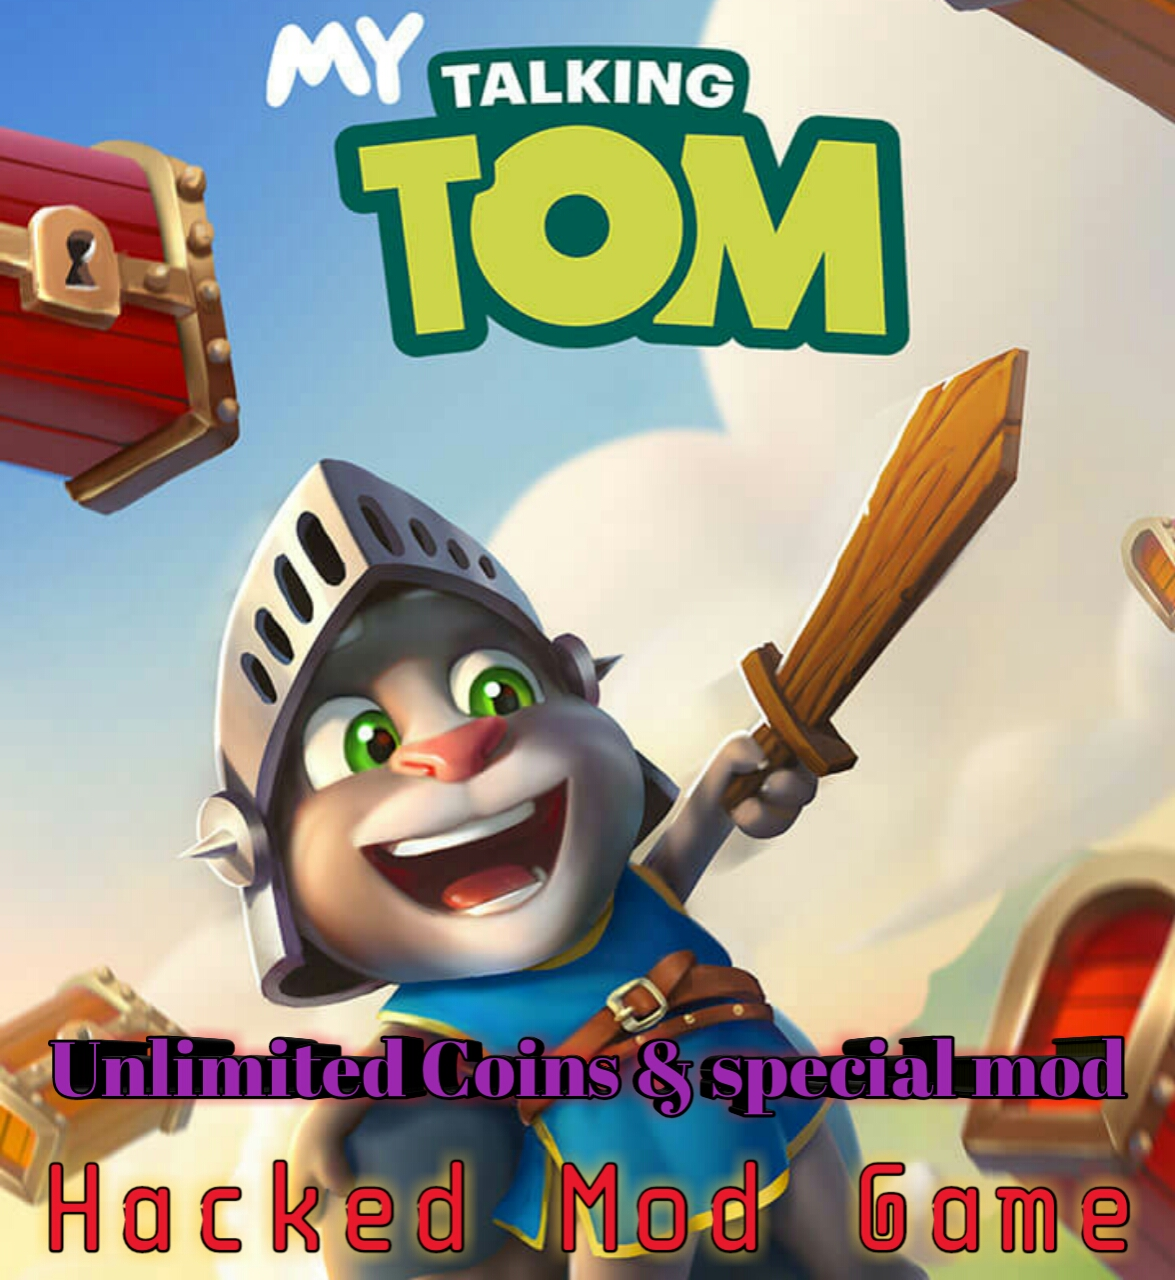 Free download my talking tom unlimited coins apk for android